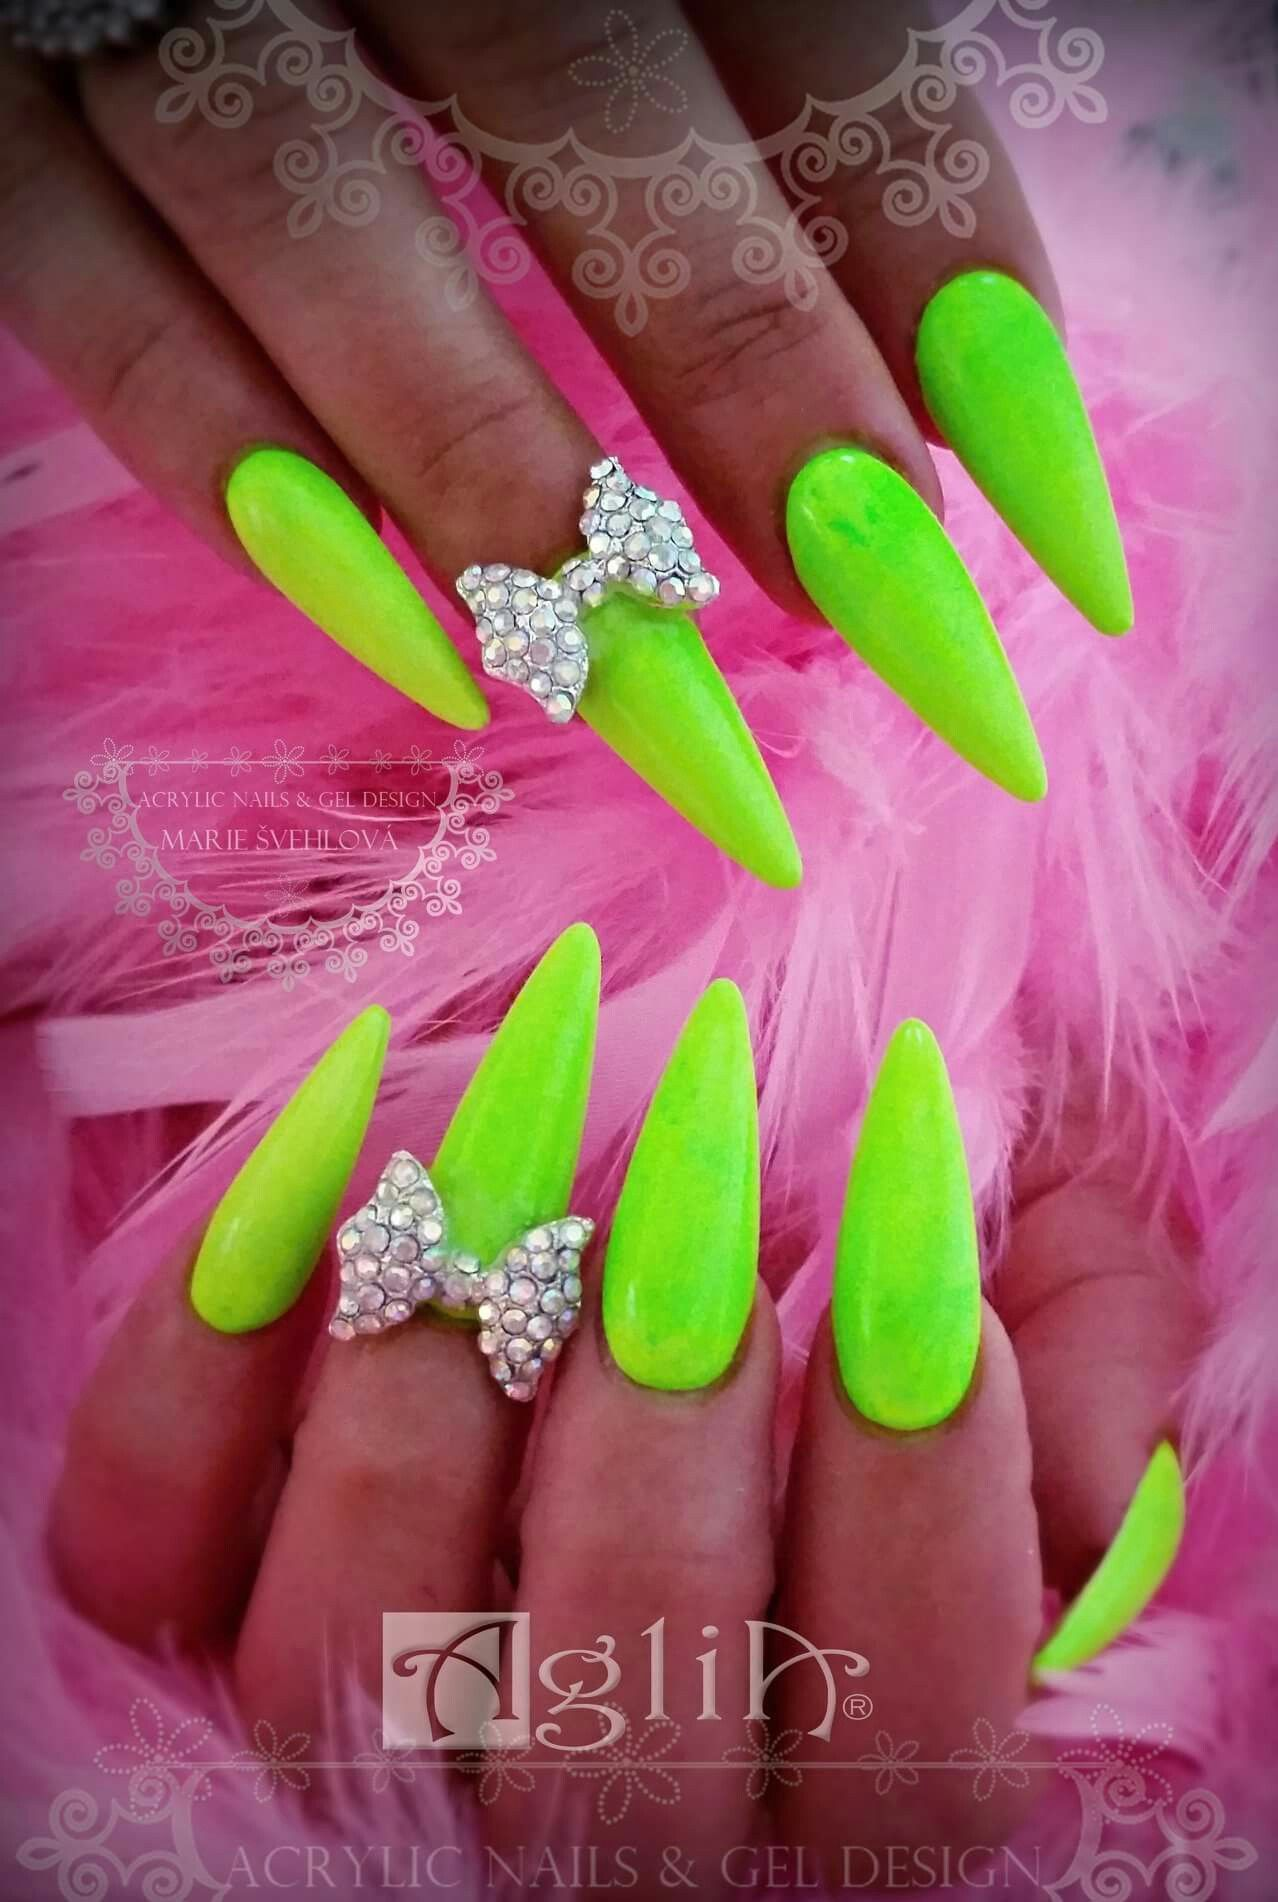 Acrylic Nails Gel Design Neon Lime Nails Long Nails Summer Nails Nails Lime Nails Black Nail Designs